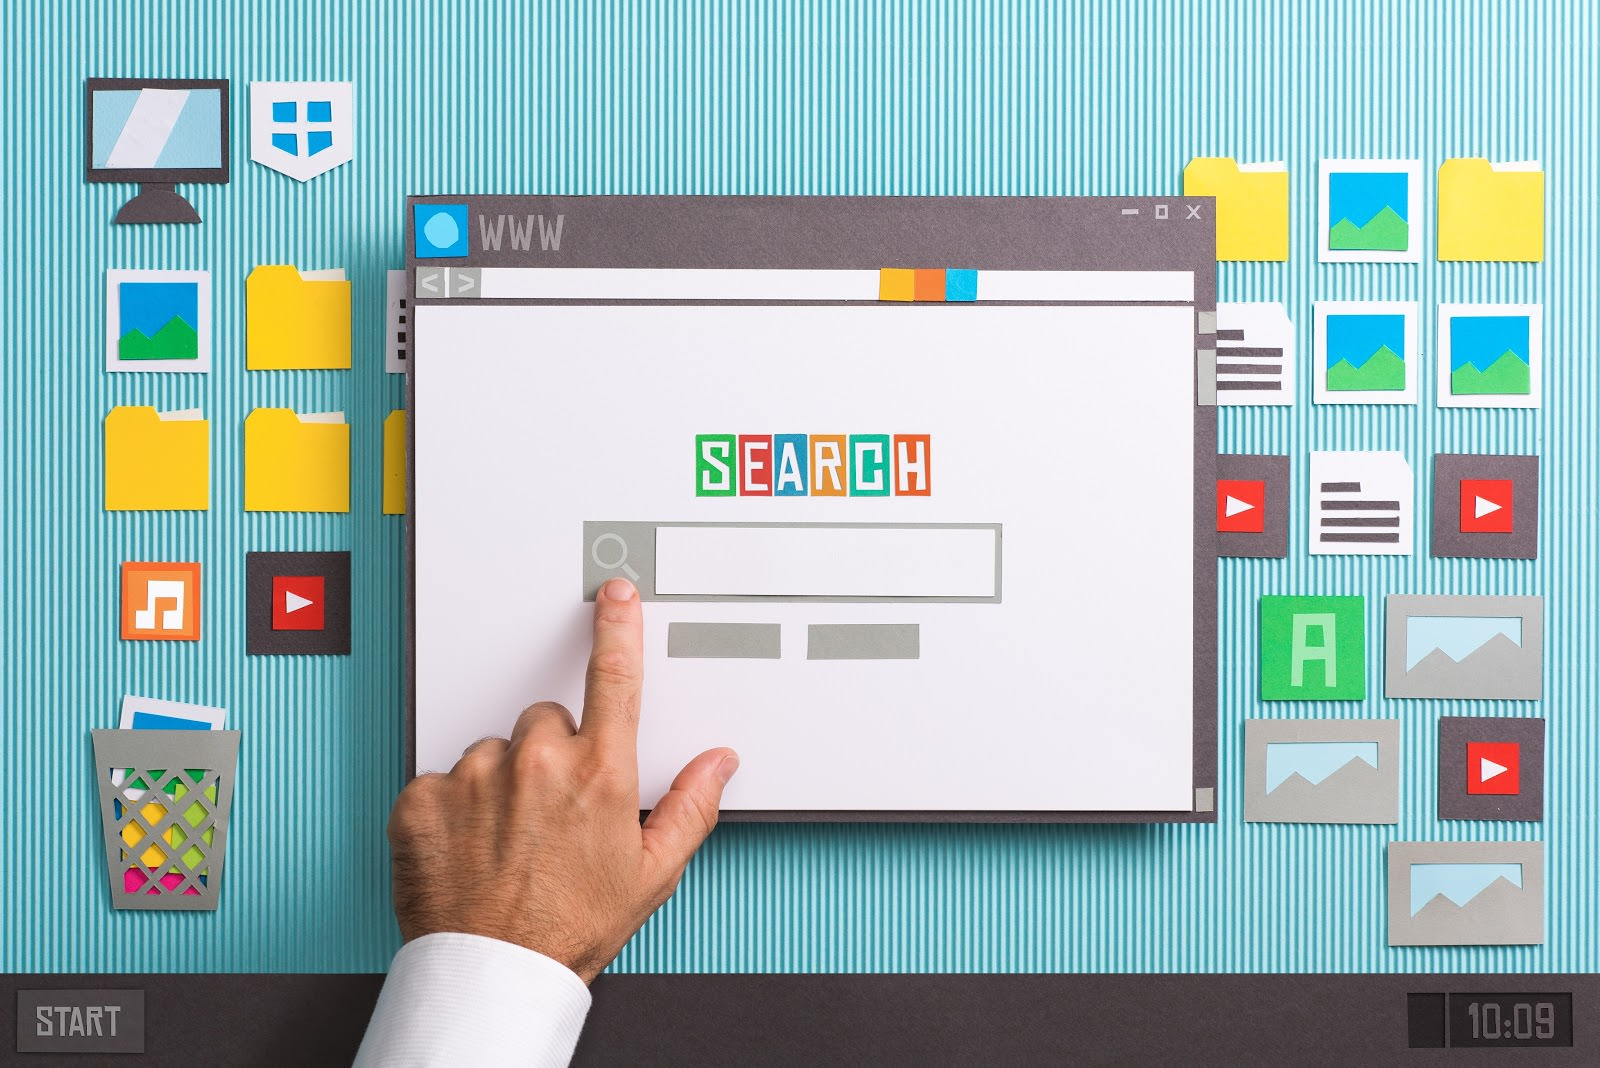 12 ways to immediately optimize your SEO ranking in 2019